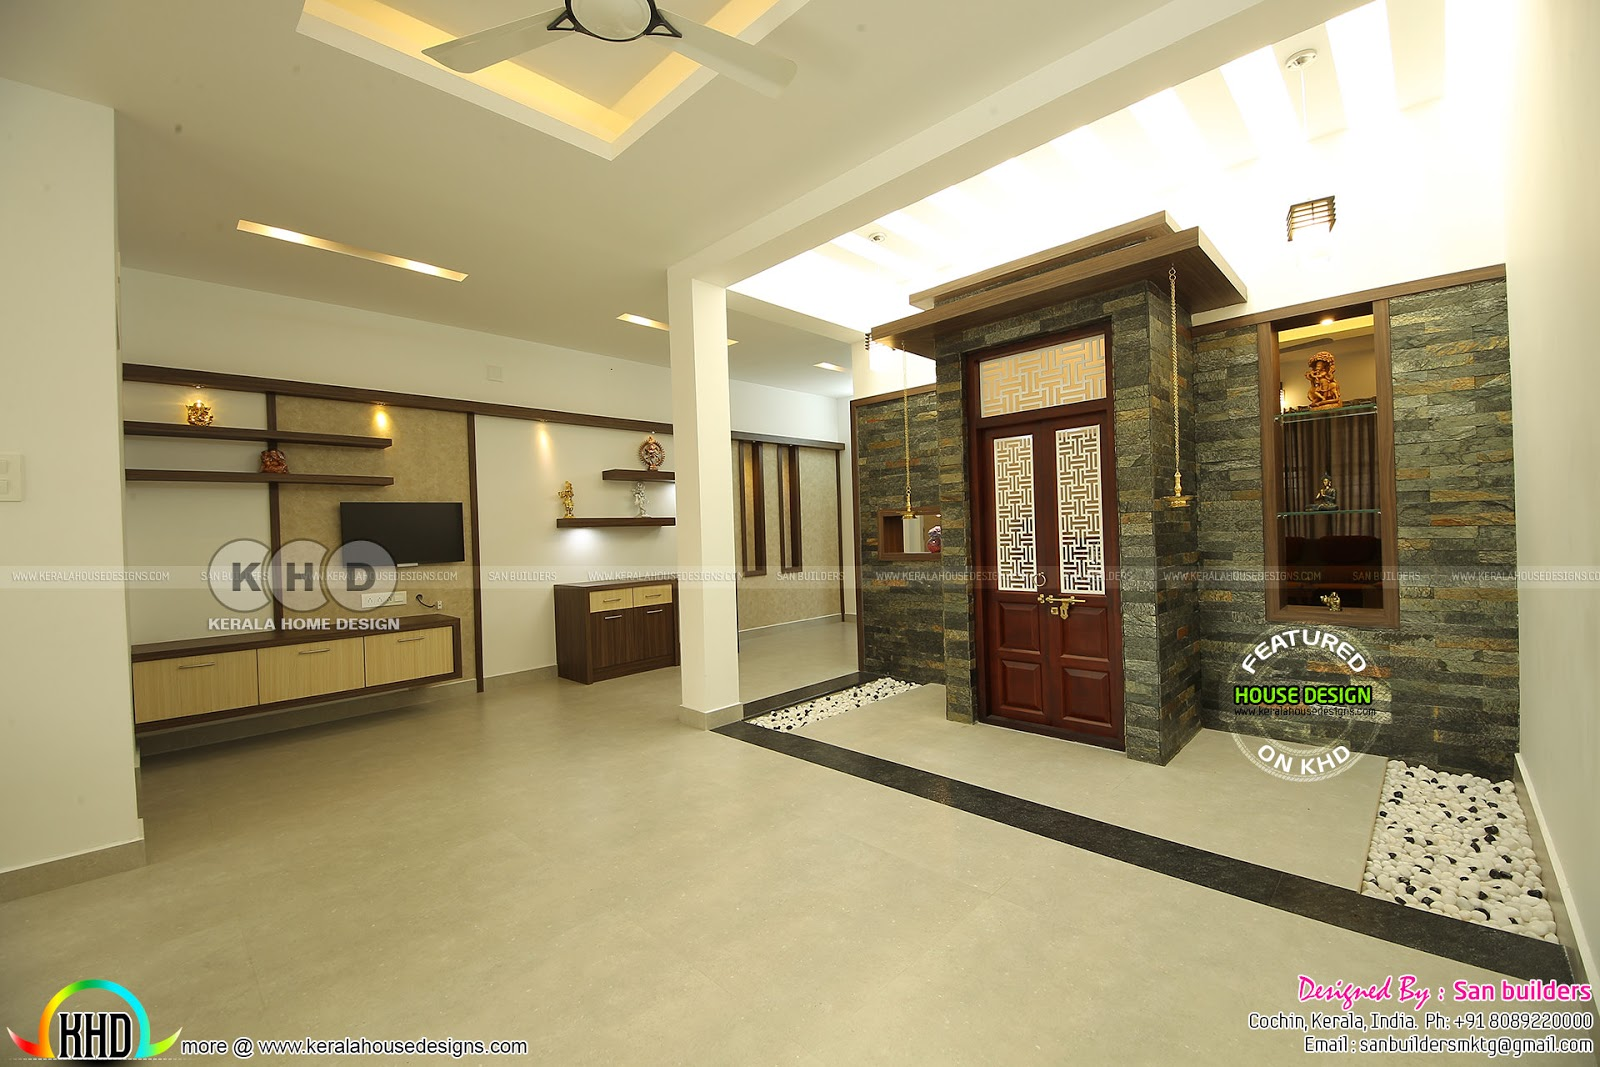 Home Design: Furnished Single Floor Kerala Home Design 1616 Sq-ft